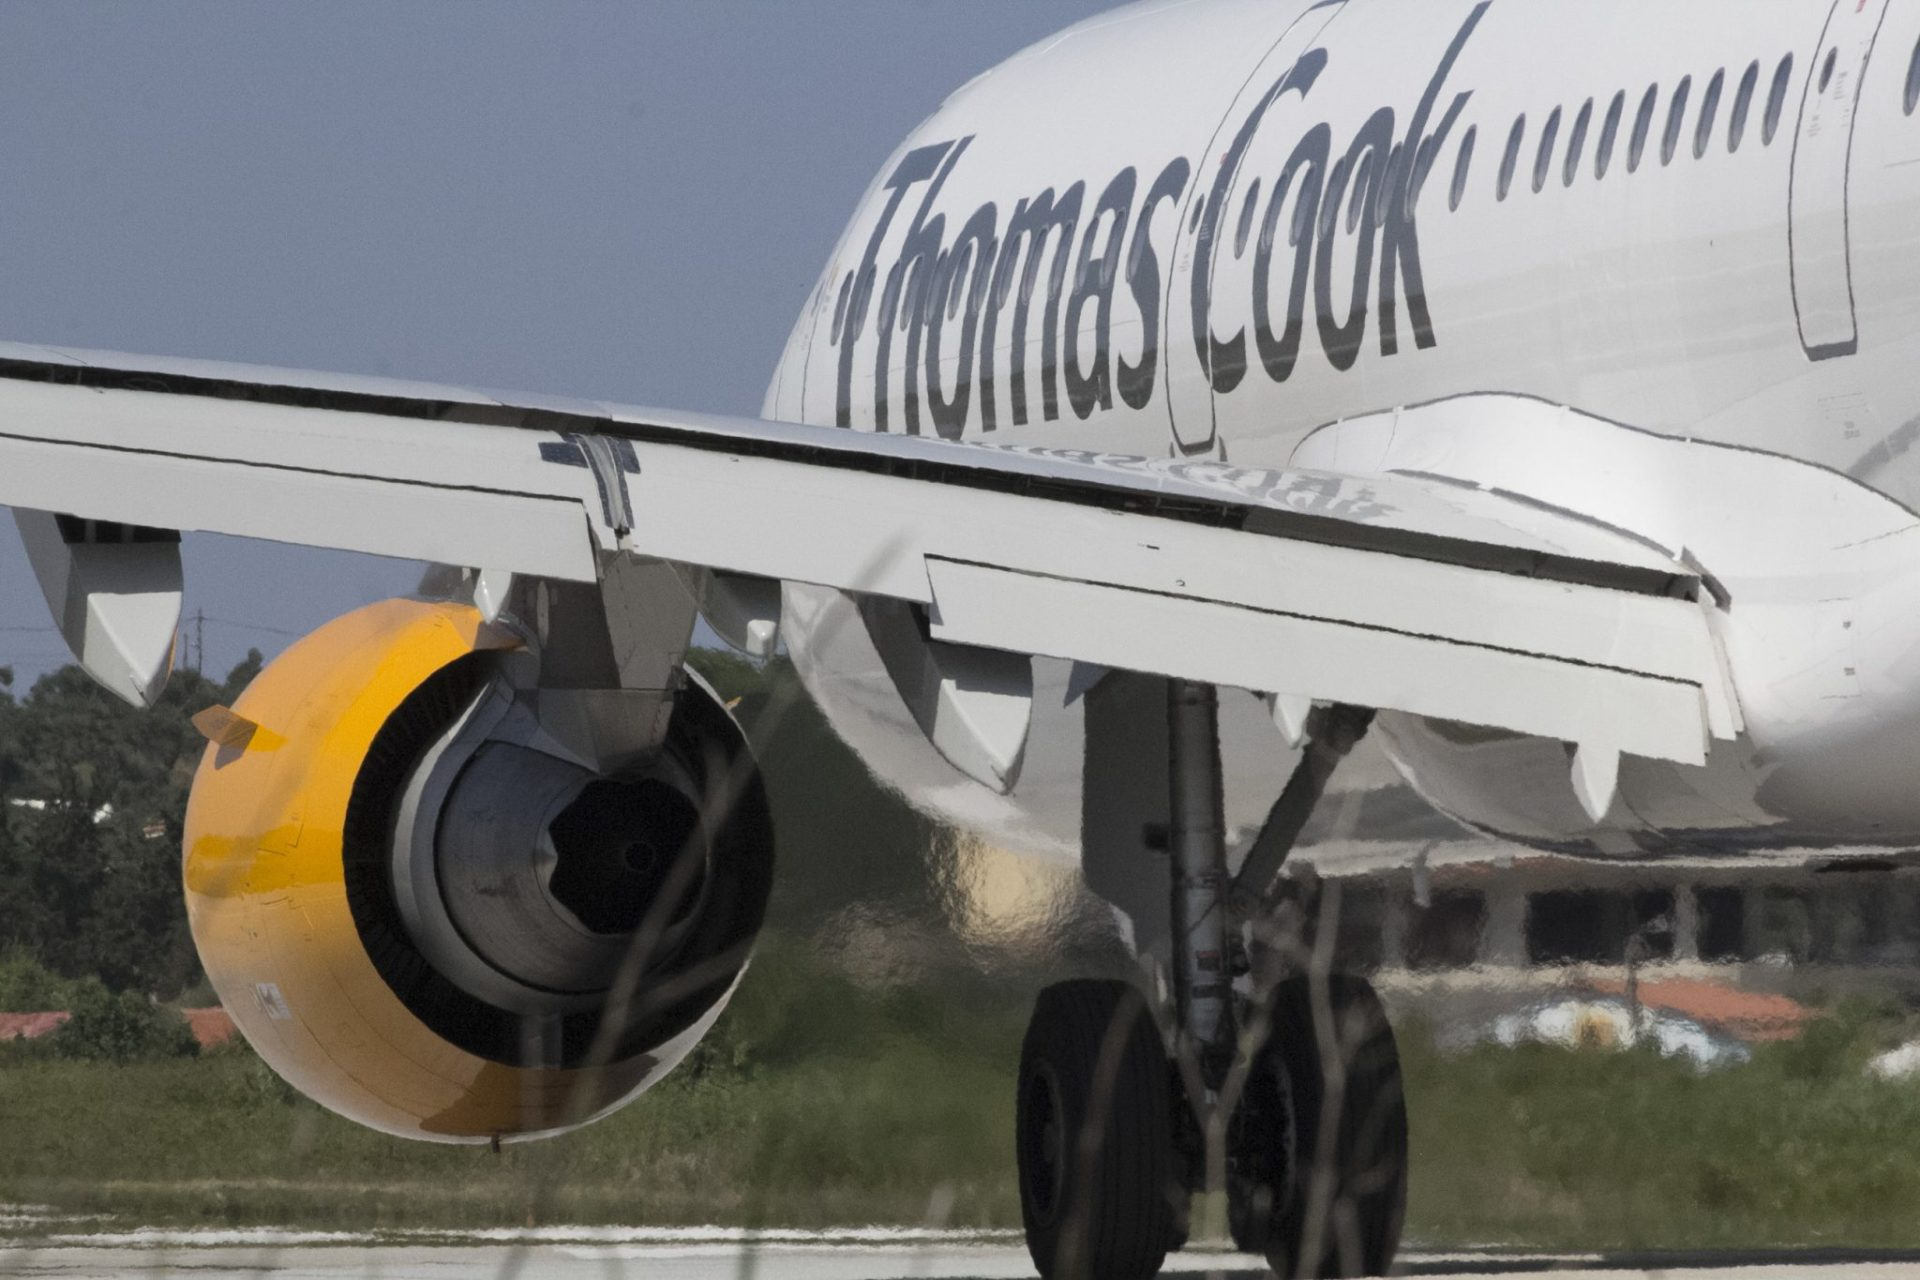 Peterborough's Thomas Cook in rescue talks with Chinese investor